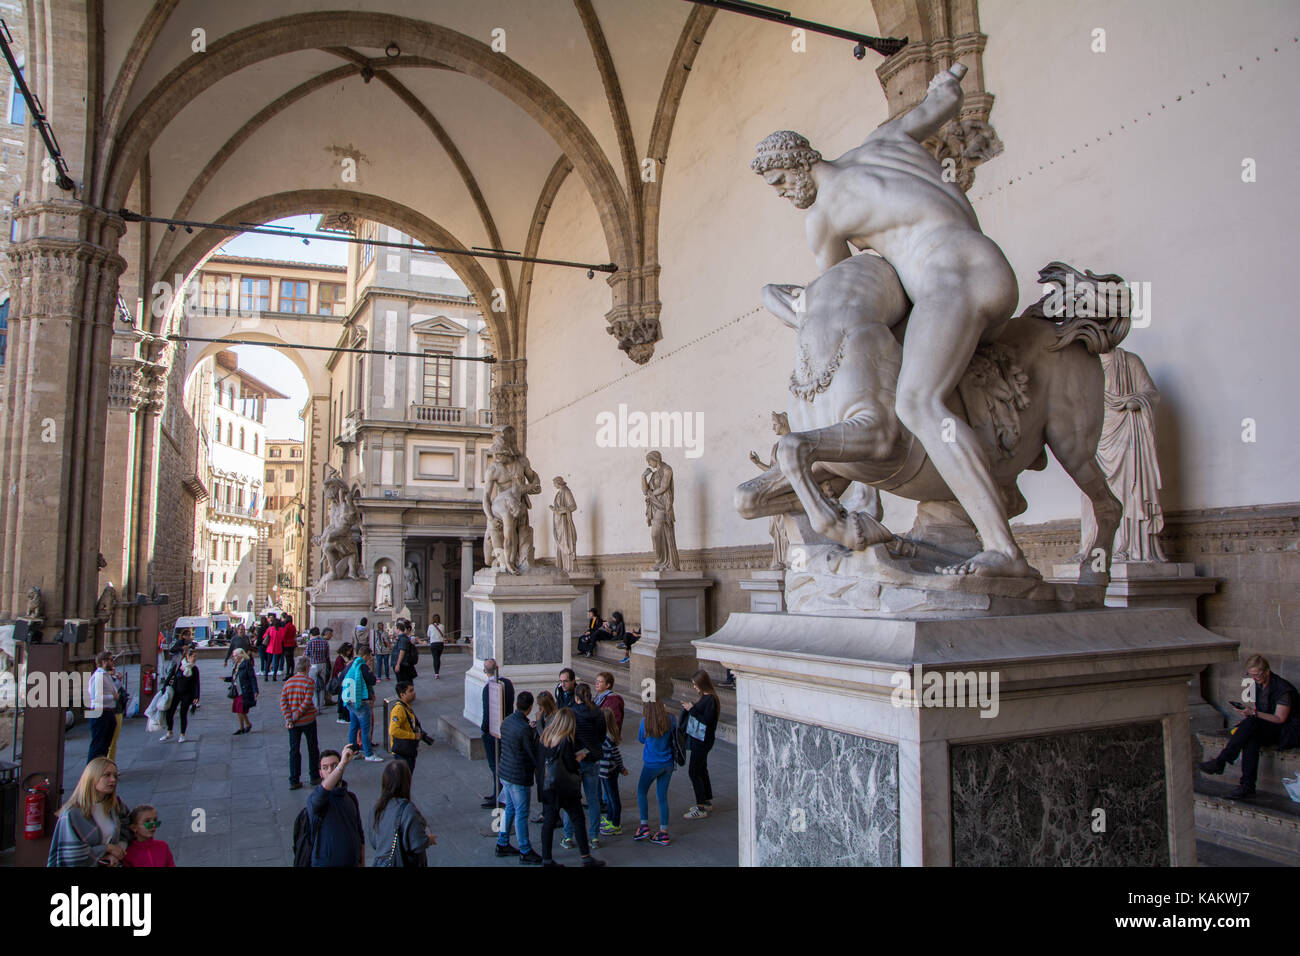 Tourists admire the various marble statues at Loggia dei Lanzi in Florence, Italy Stock Photo